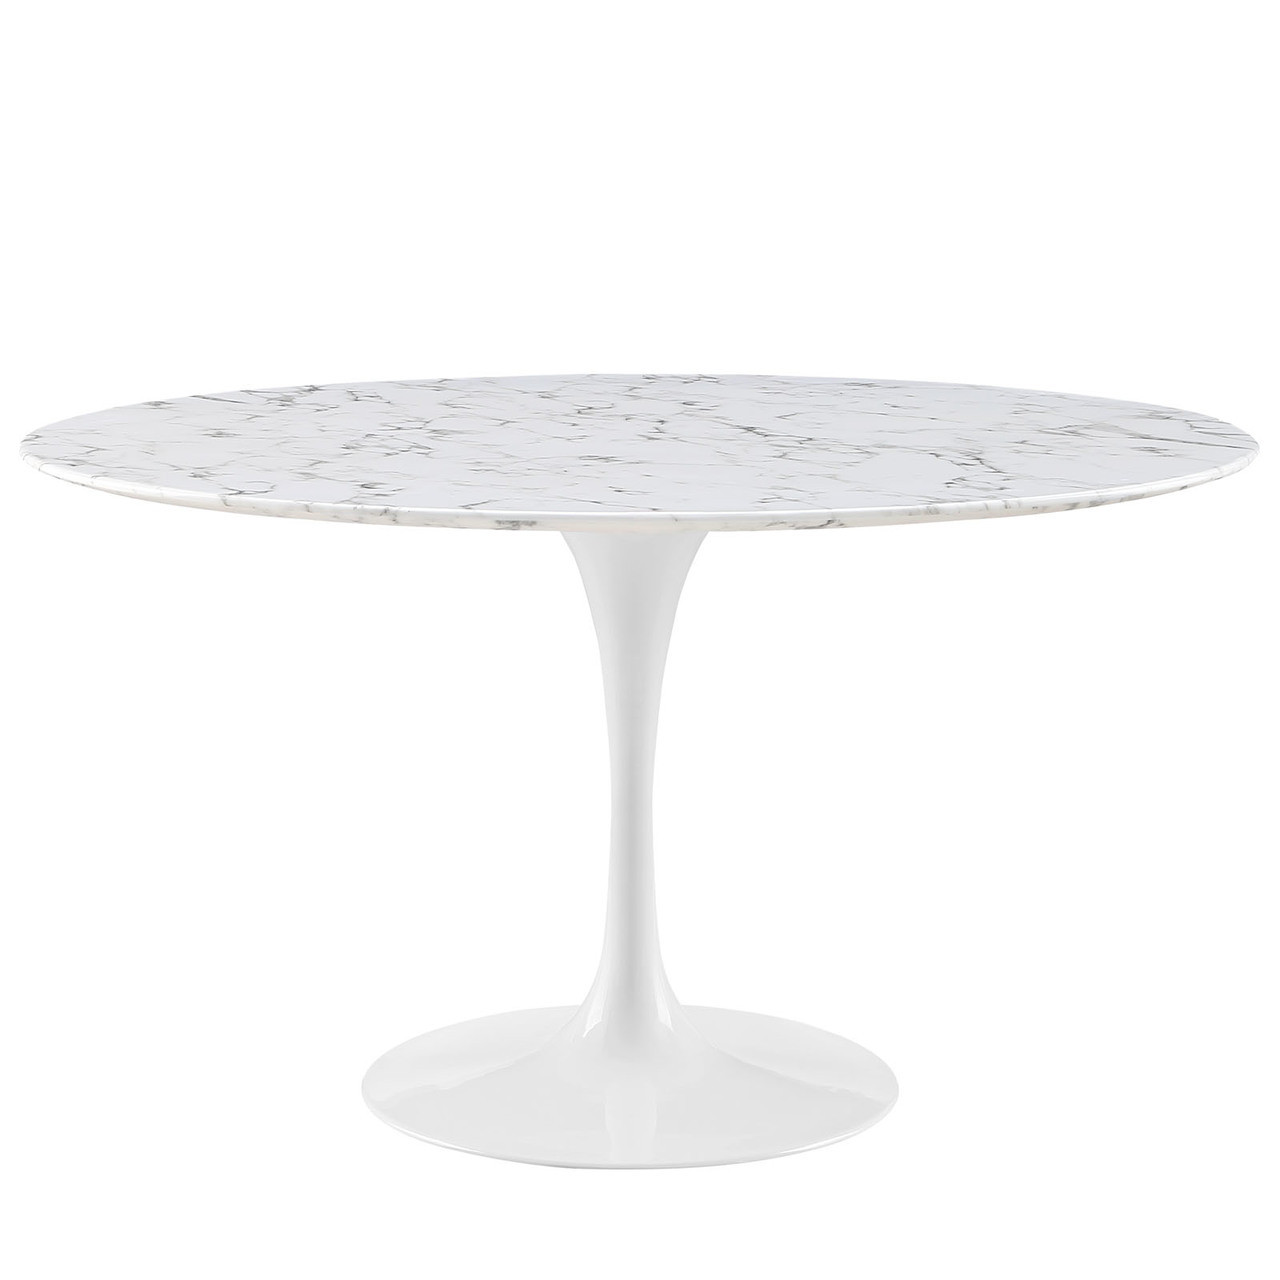 "Lippa 54"" Round Artificial Marble Dining Table"